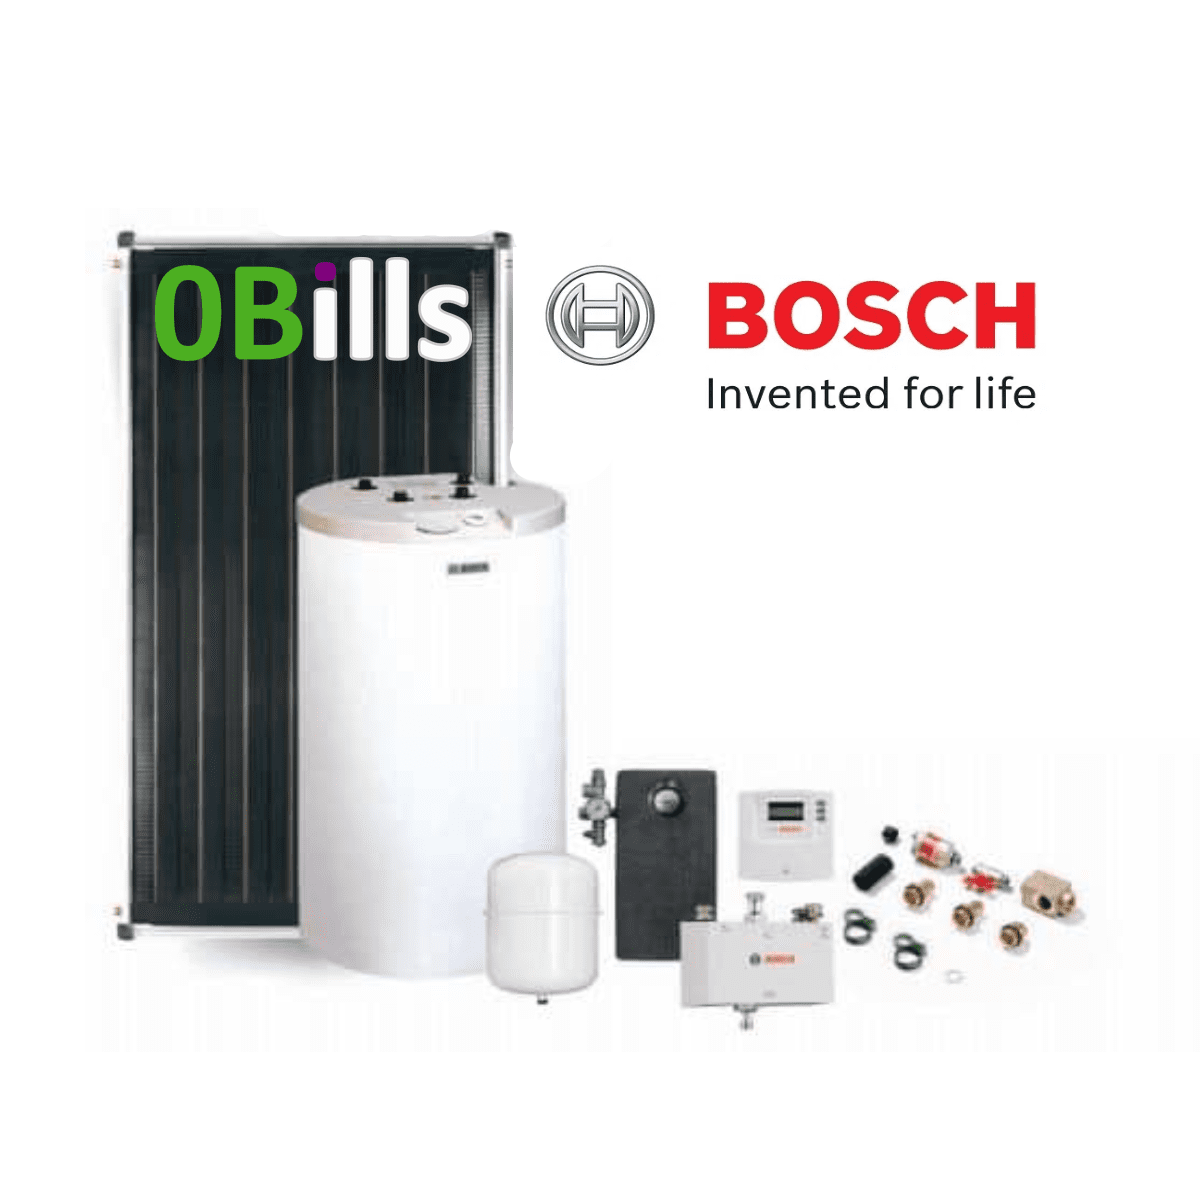 Solar Thermal Package BOSCH Comfort with 120 l cylinder